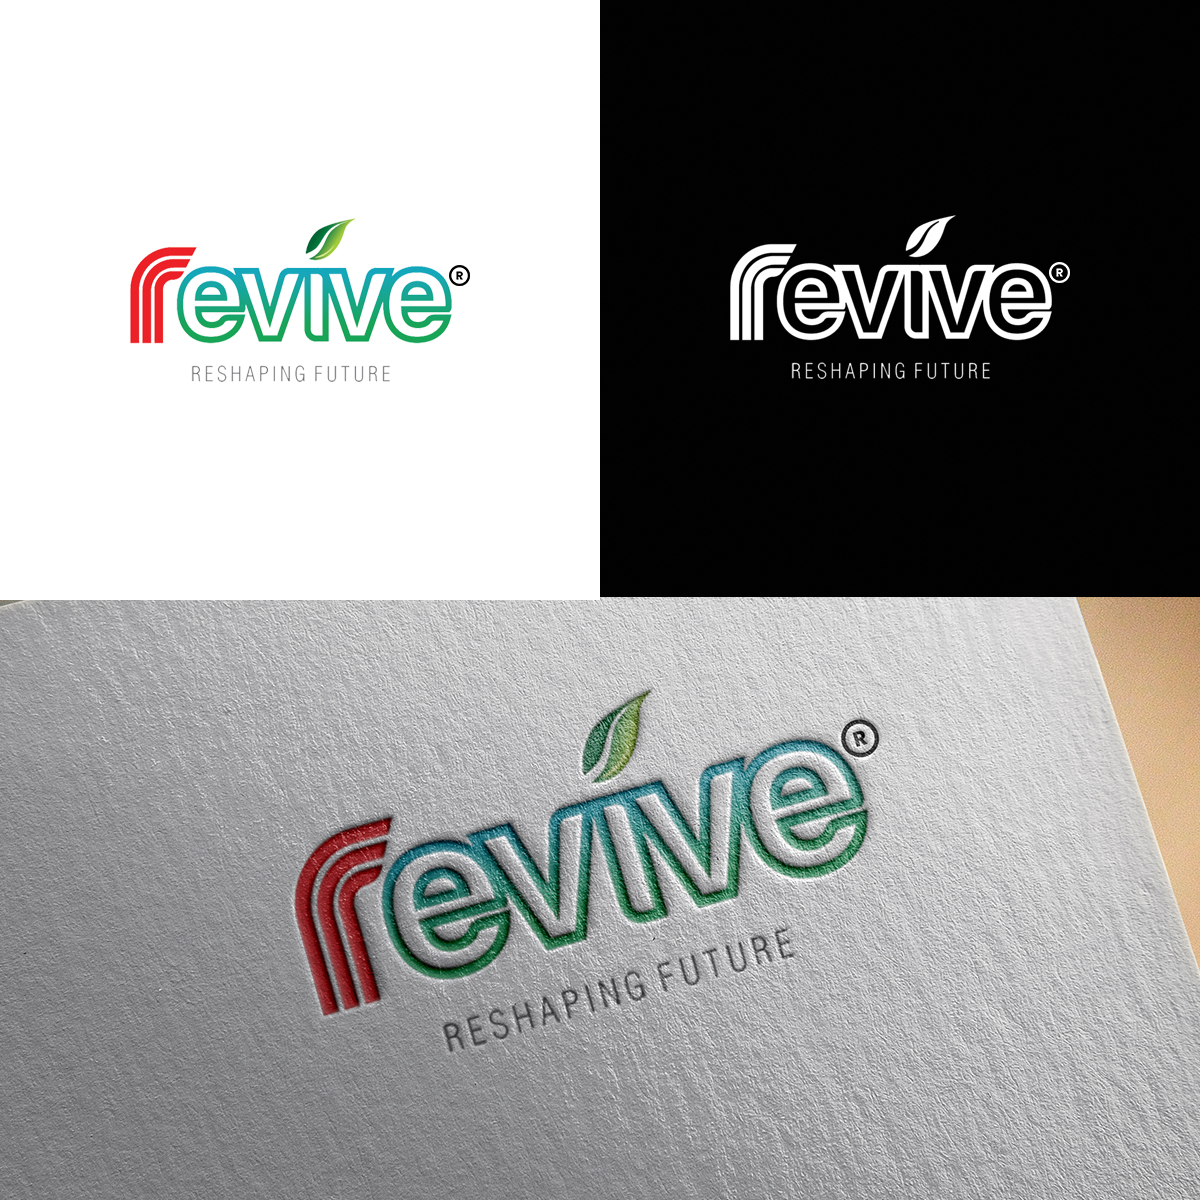 Boundless Technologies designed the logo by Revive